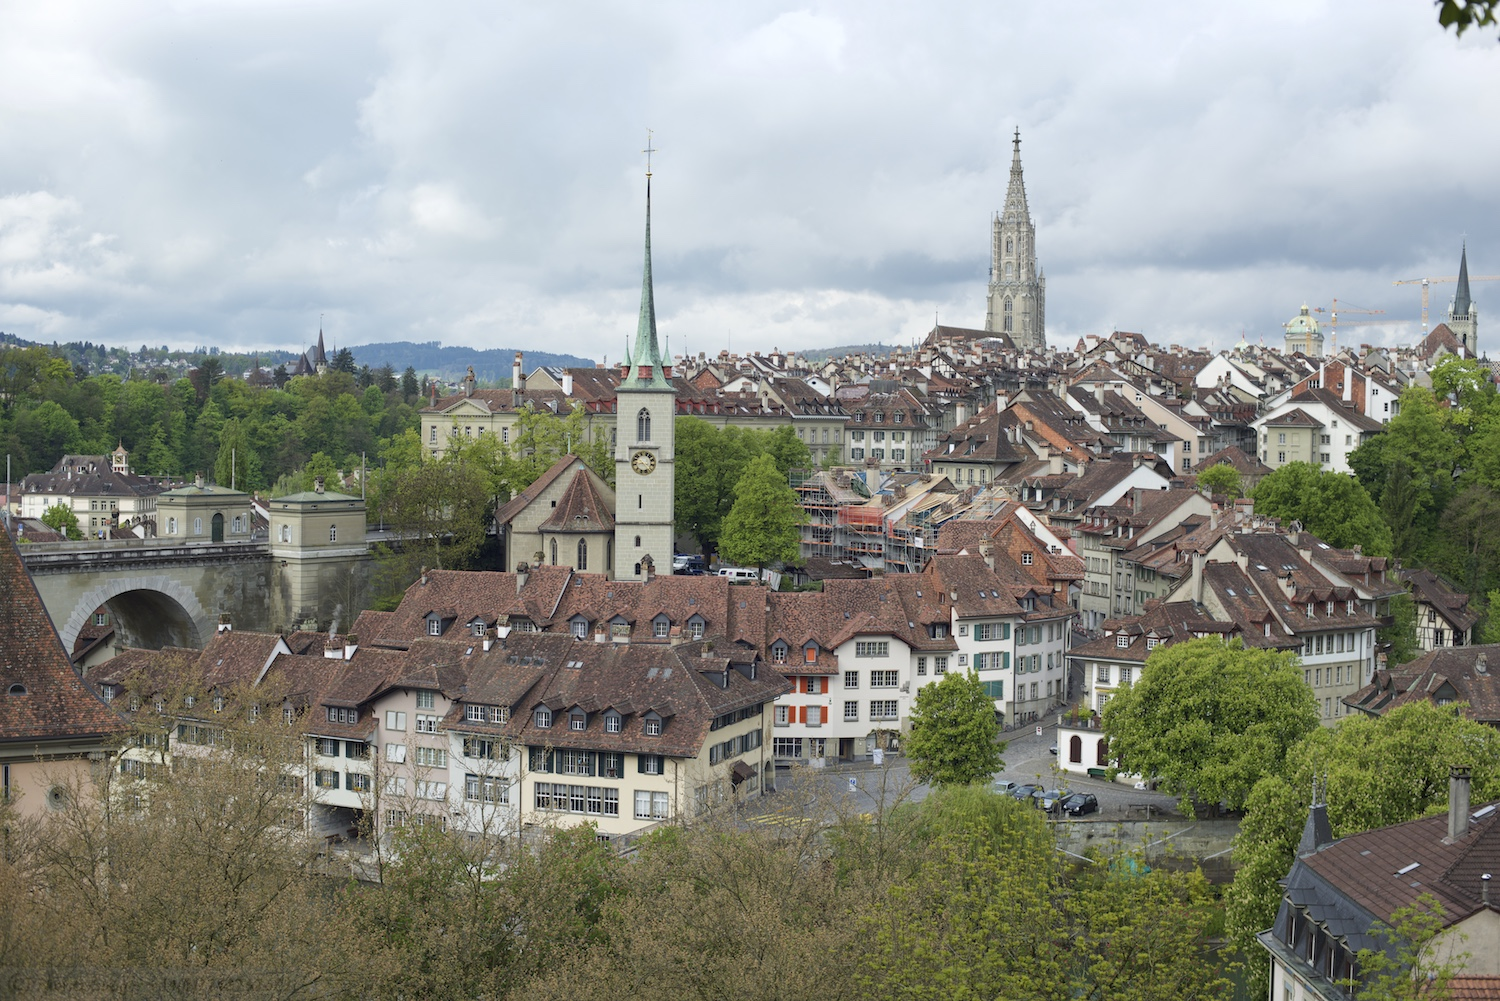 Near the Rosengarten over looking Bern